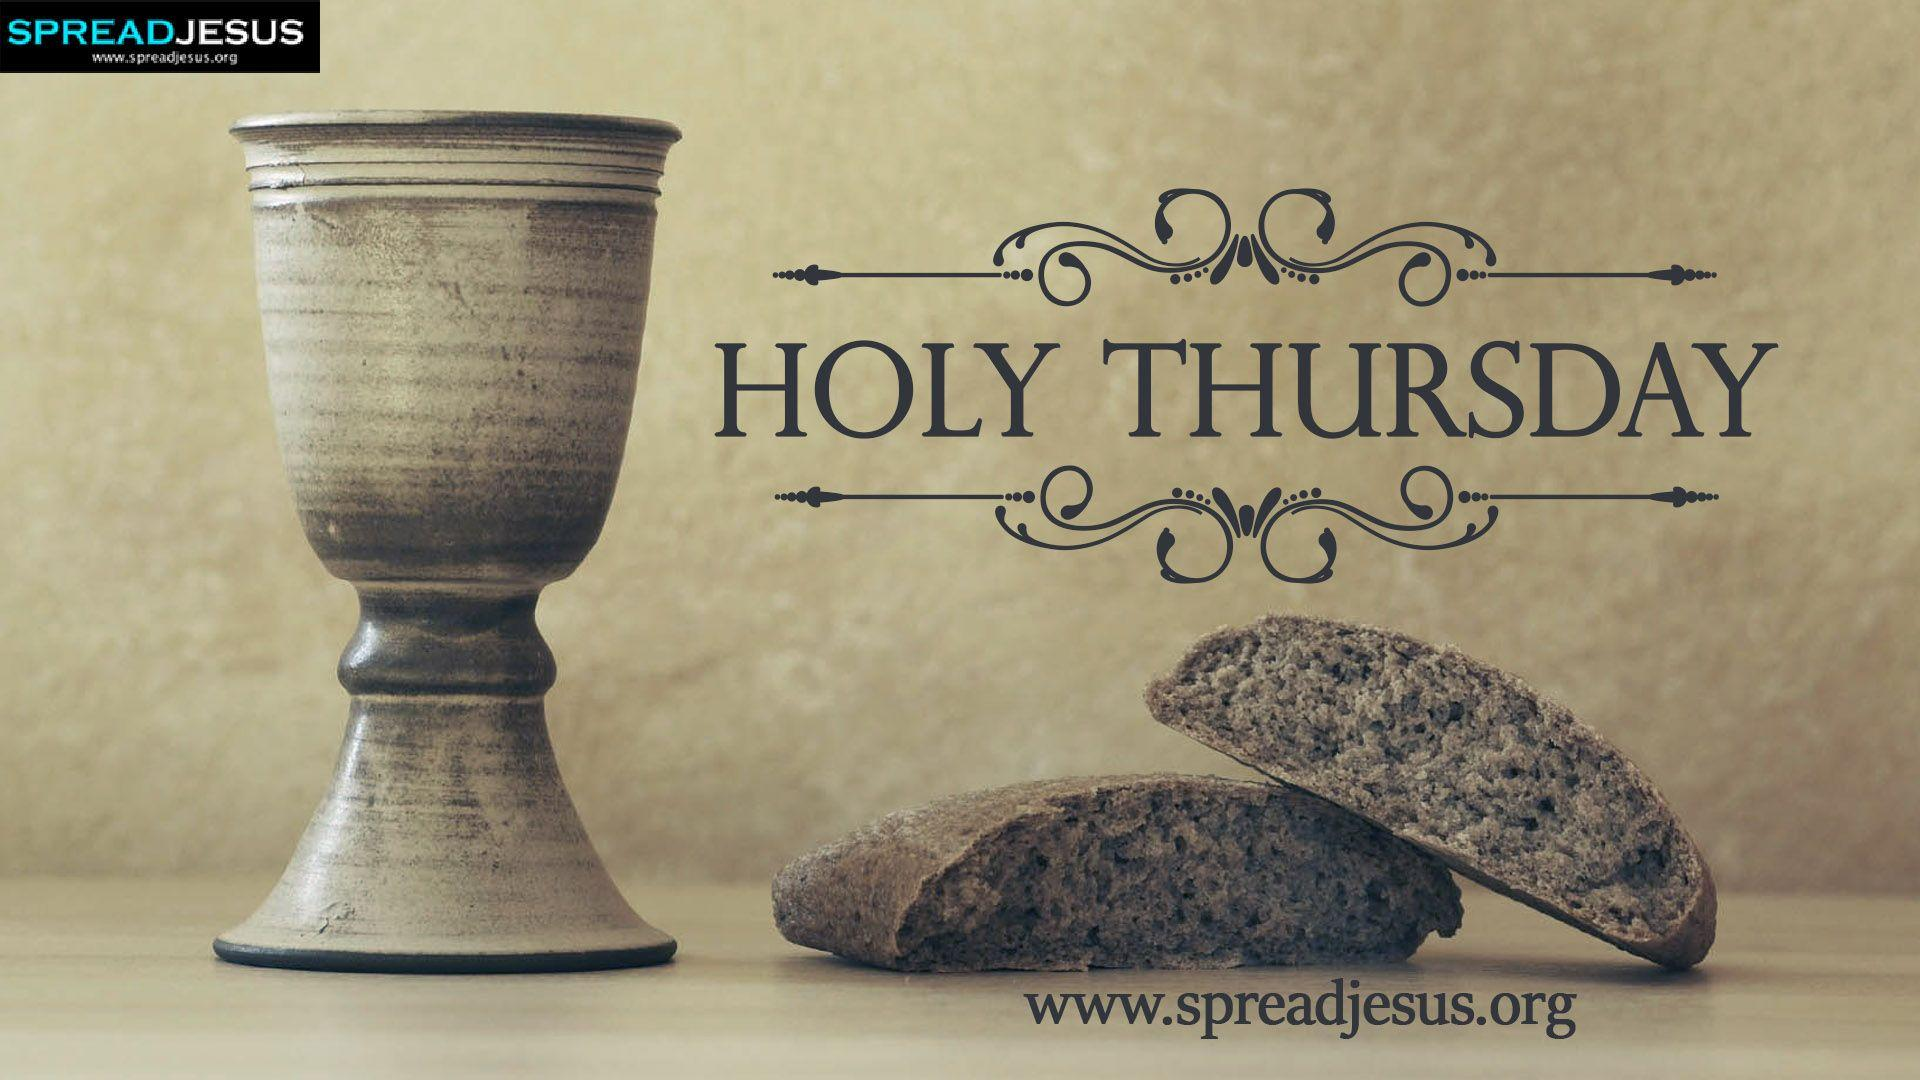 Holy Thursday HD Wallpapers Free Download Holy Thursday HD Wallpapers